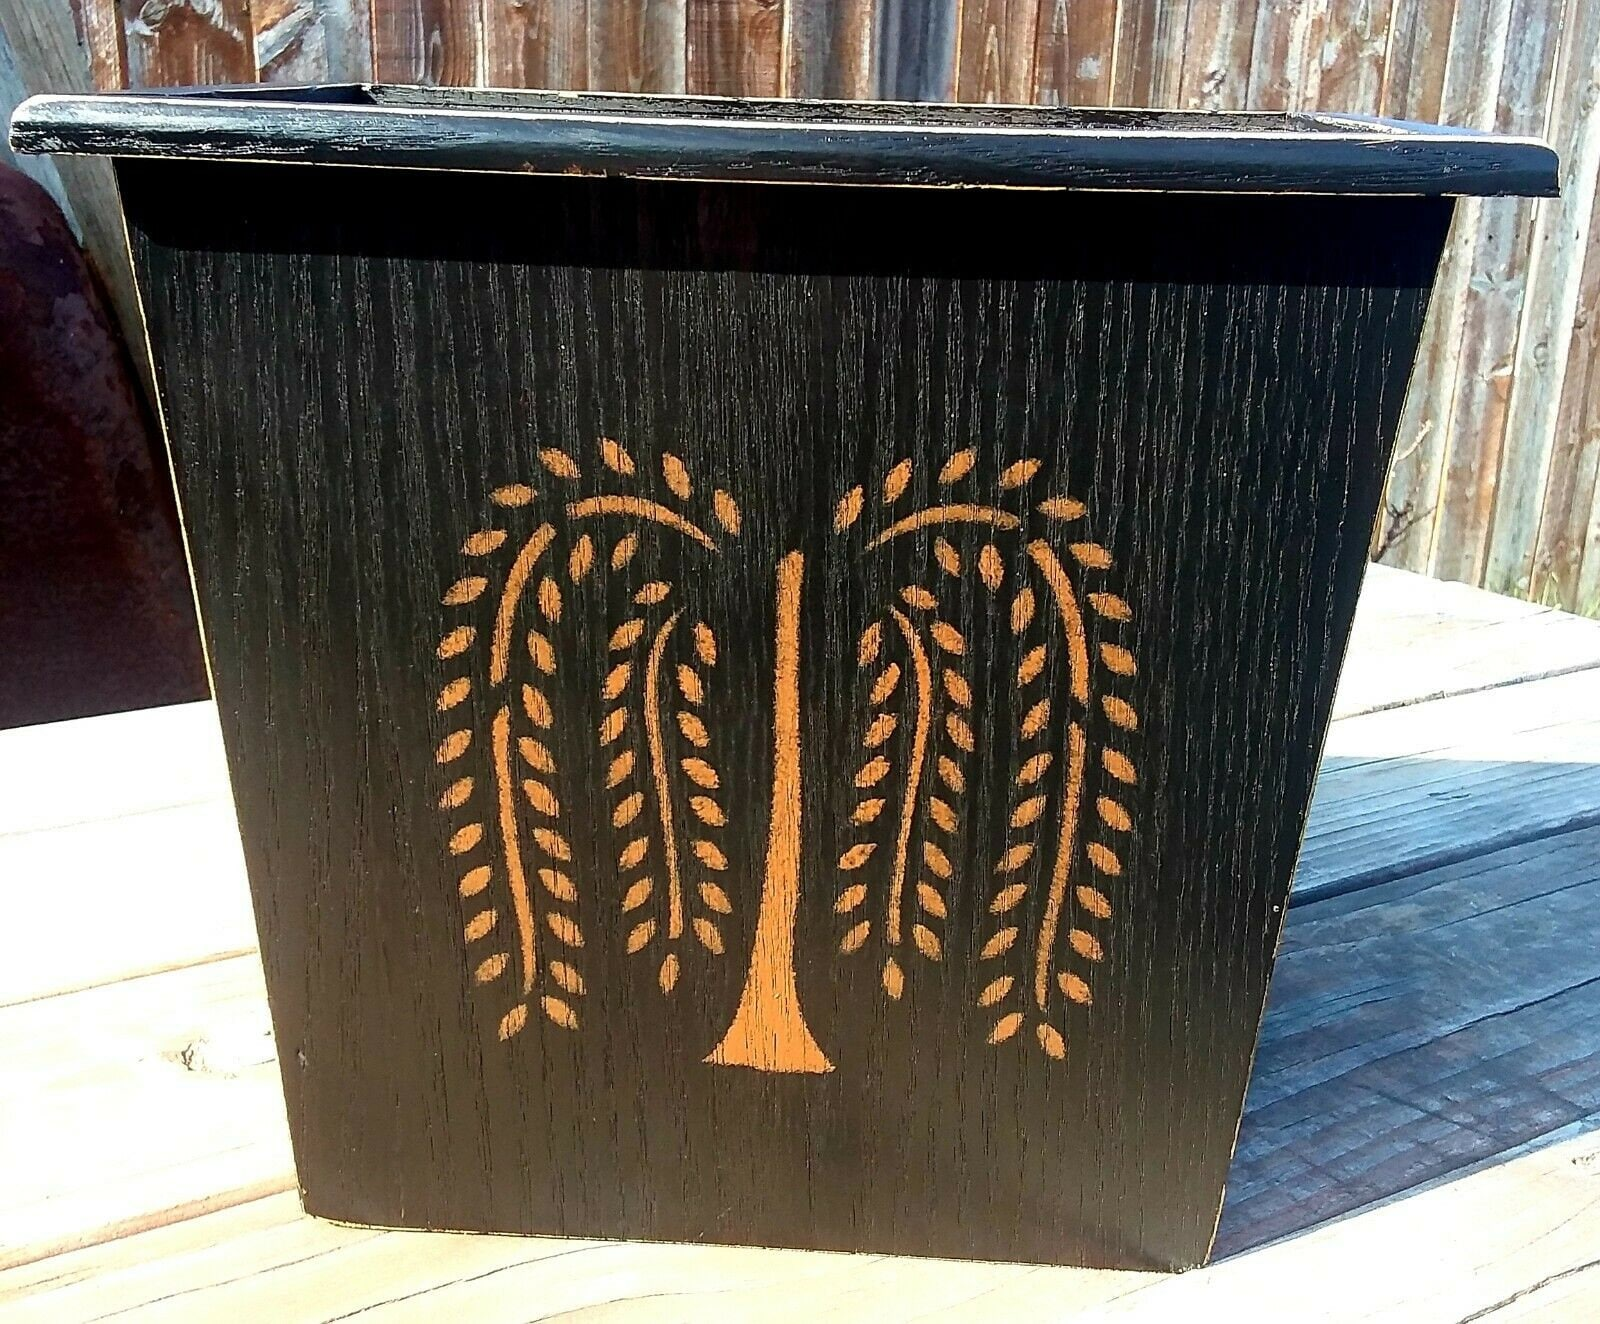 Primitive Decor Wood Black Trash Garbage Can Willow Tree Star Crow Pineapple